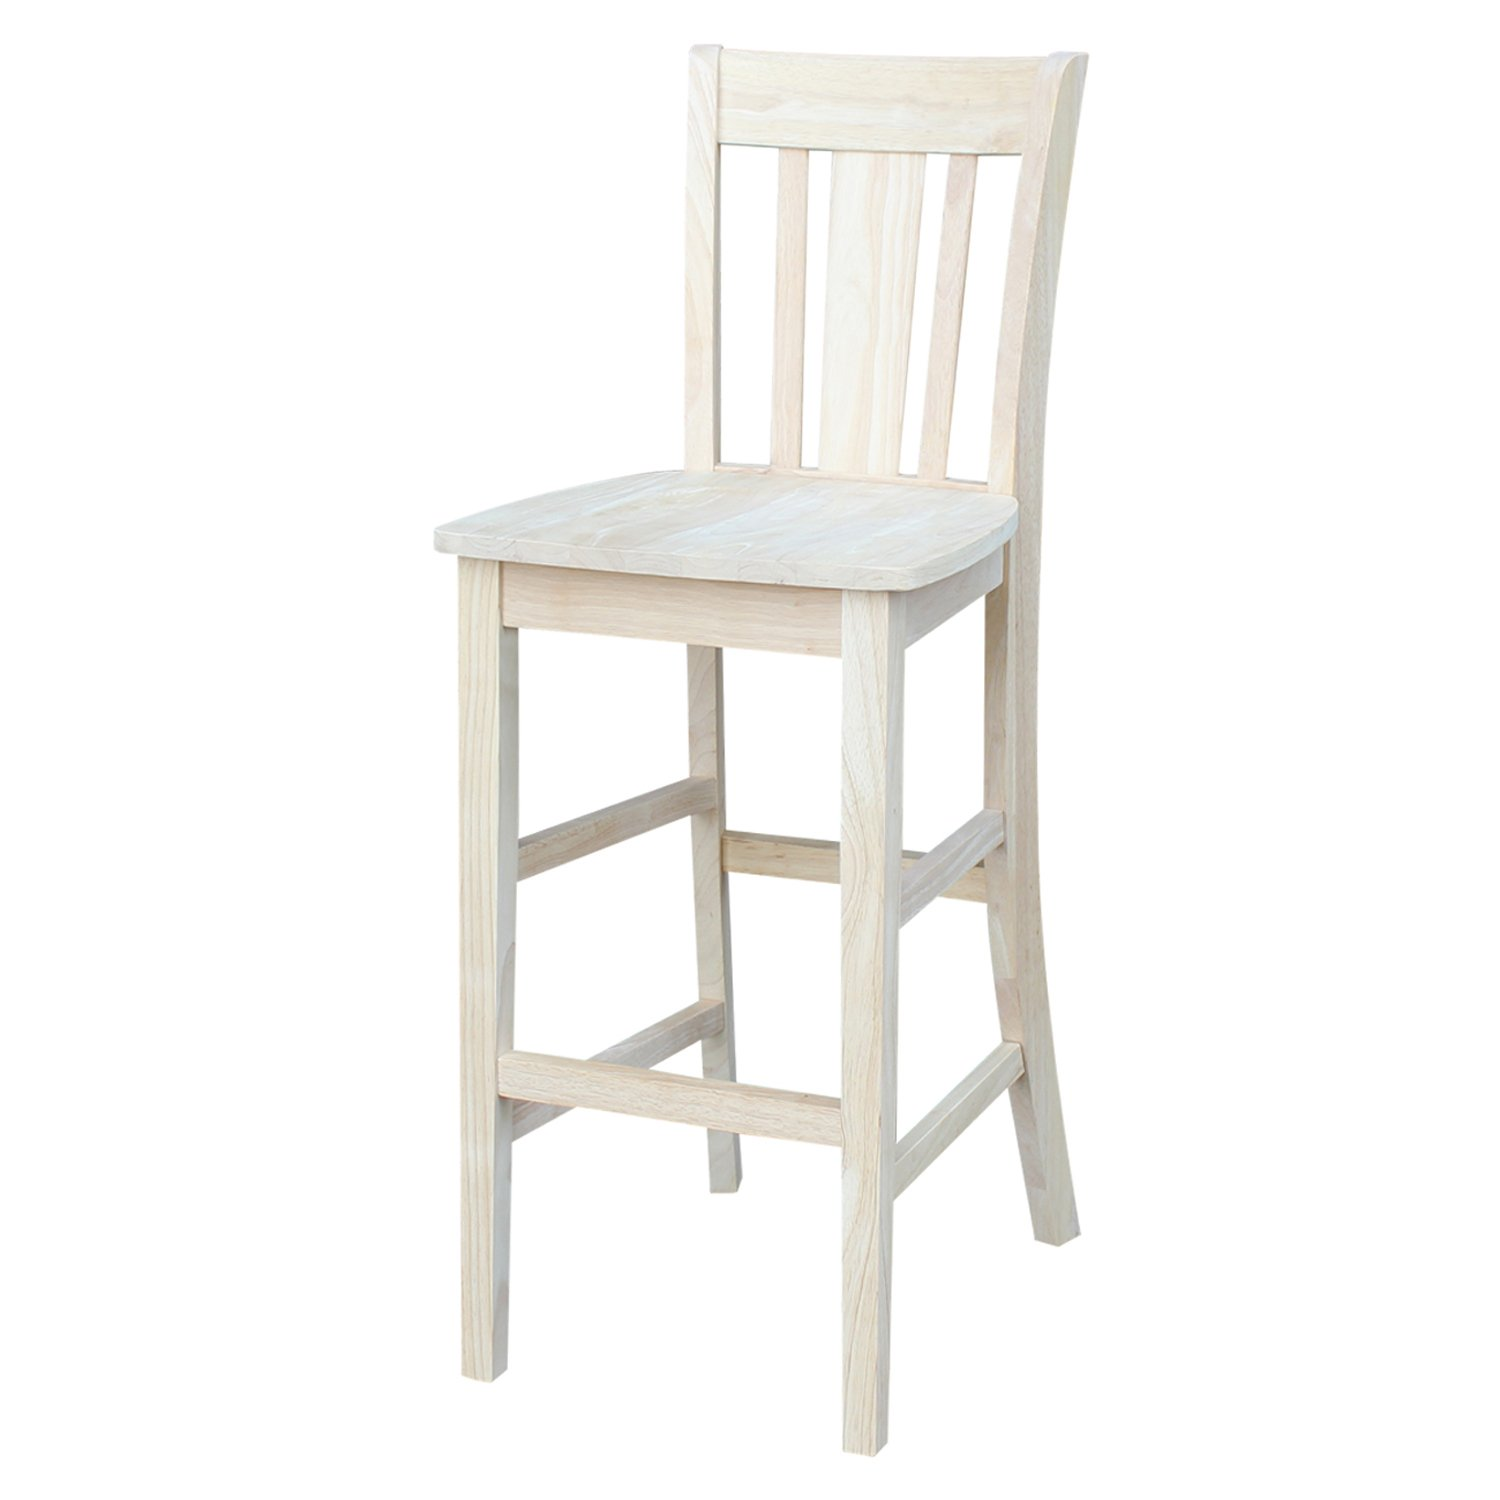 International Concepts San Remo Stool, 30-Inch SH, Unfinished